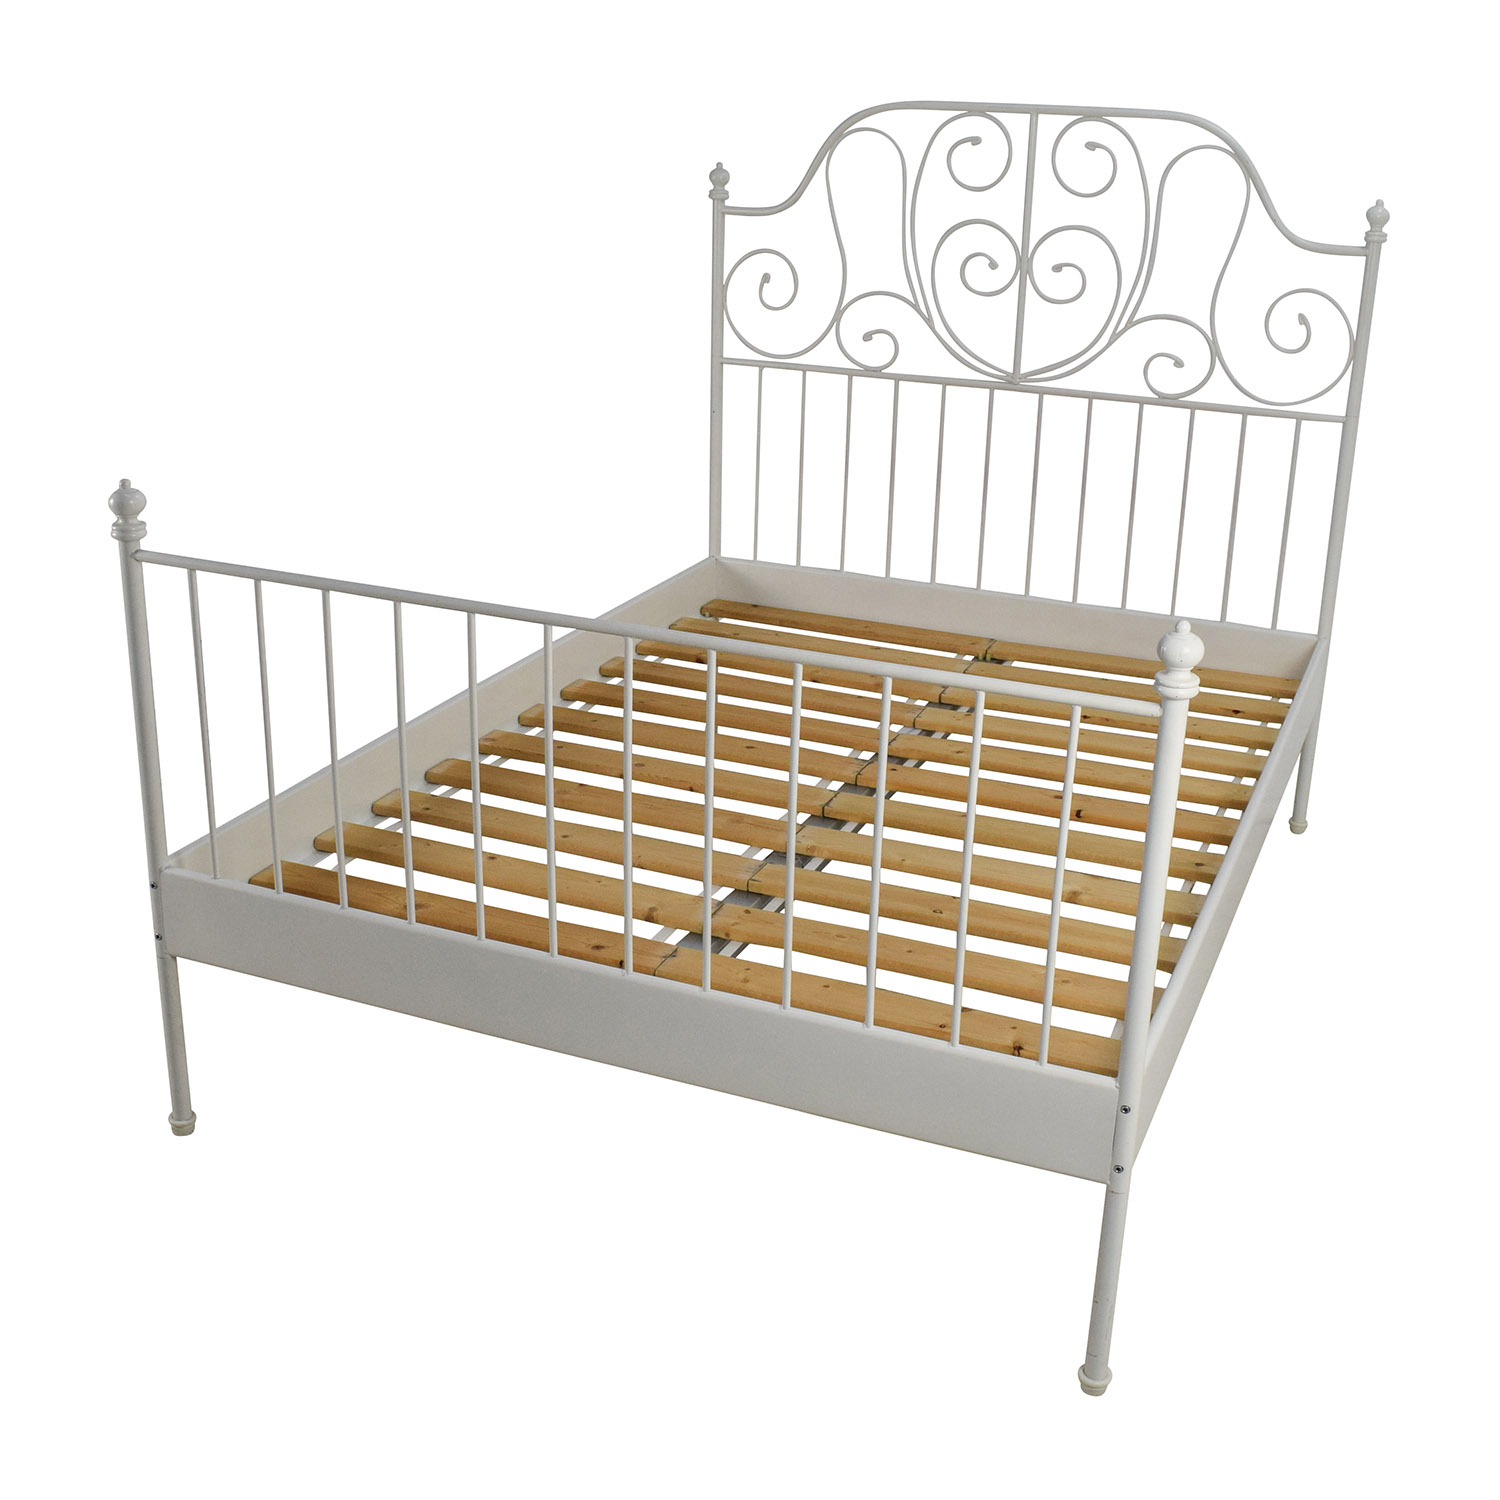 Ikea leirvik bed frame frame design reviews for Full size bed frame